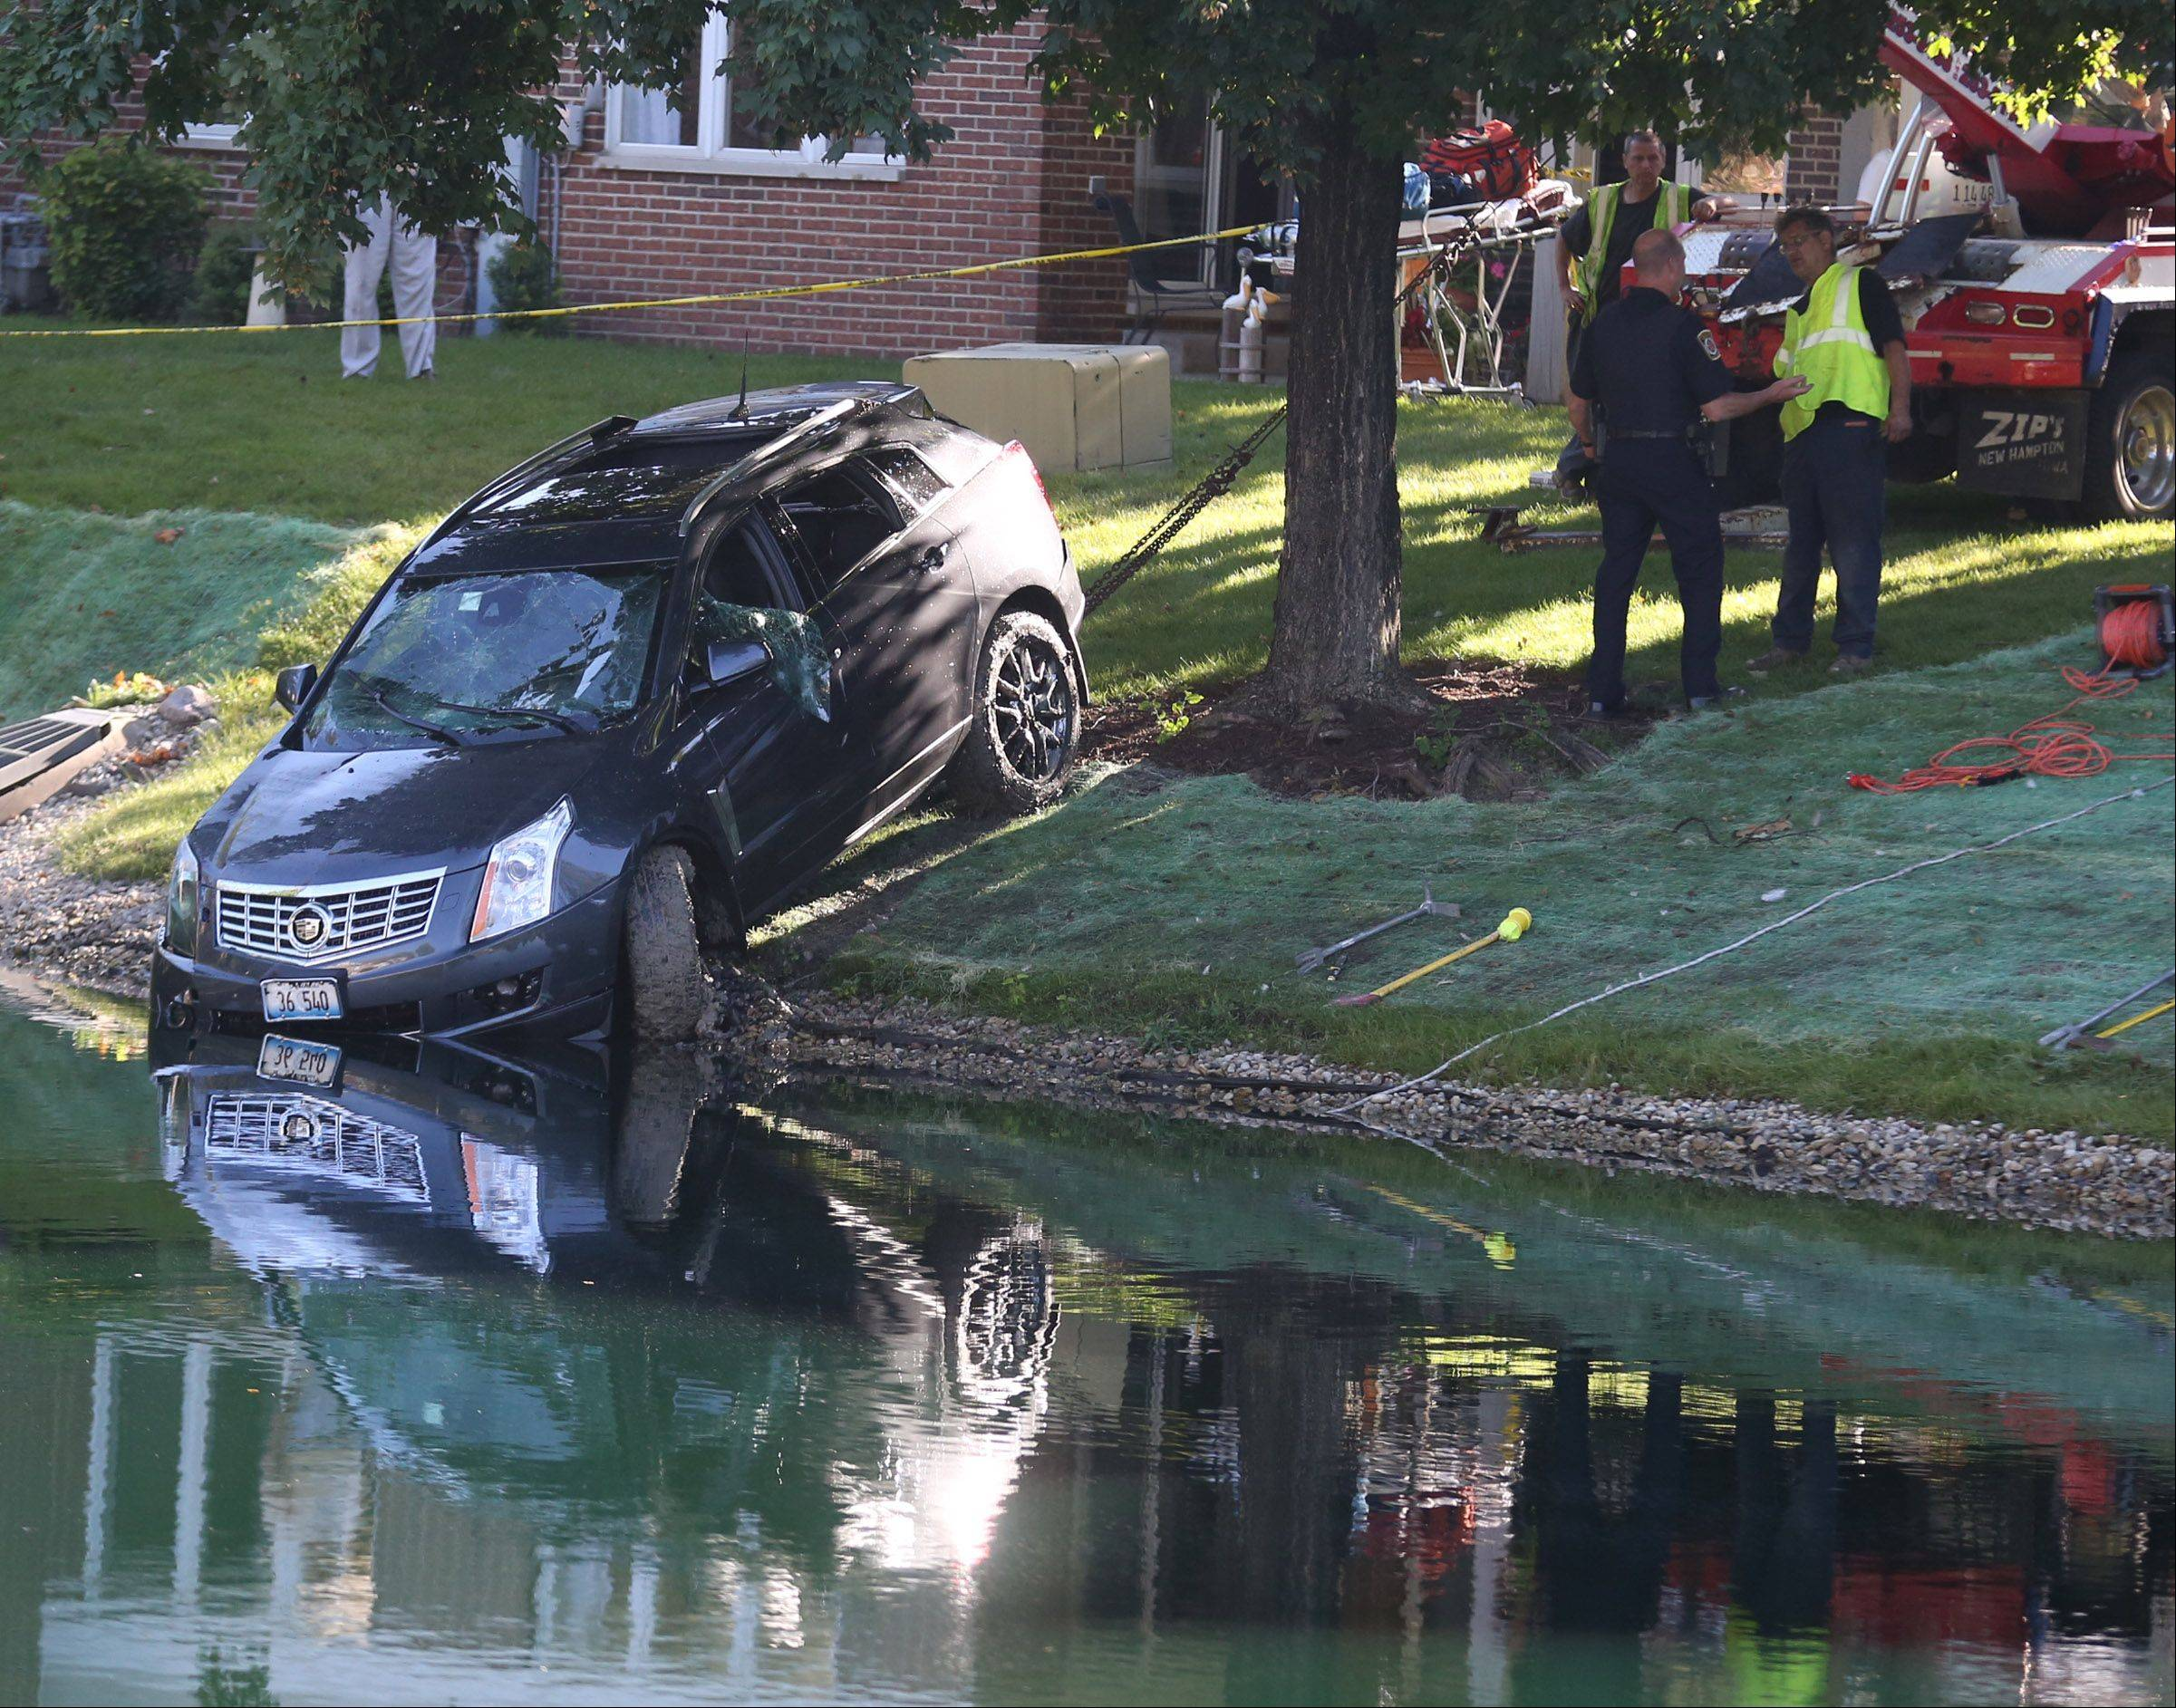 The SUV is pulled out of the pond in the 1500 block of Courtland Drive, in Arlington Heights.